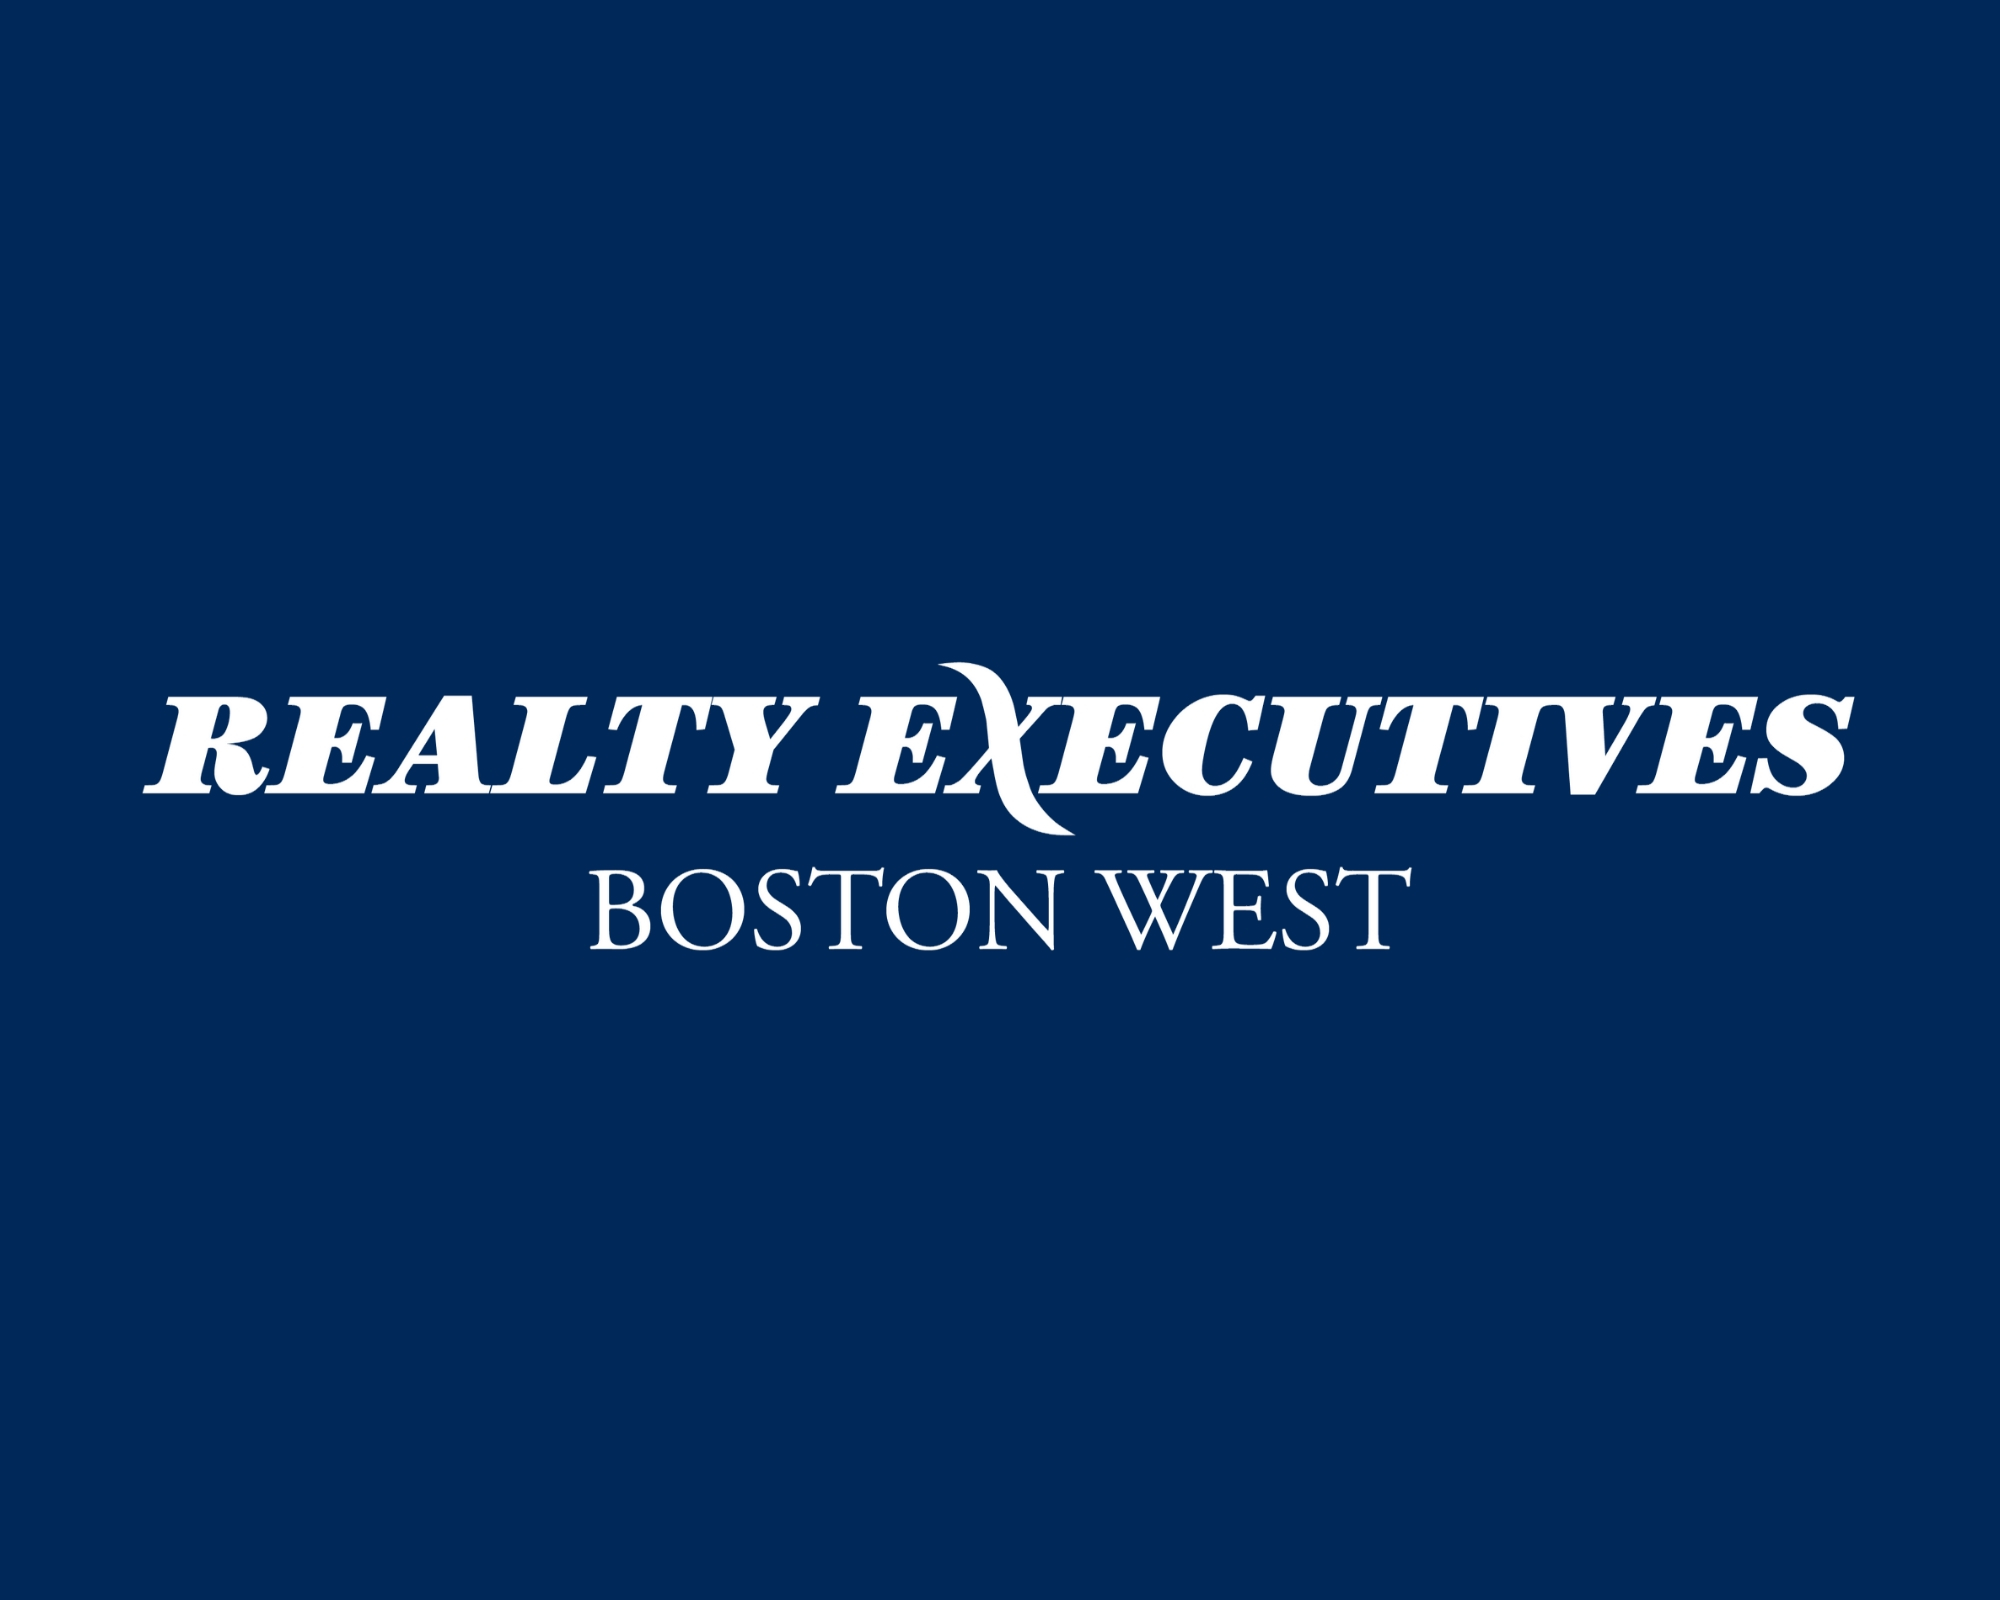 Realty Executives Boston West Holliston